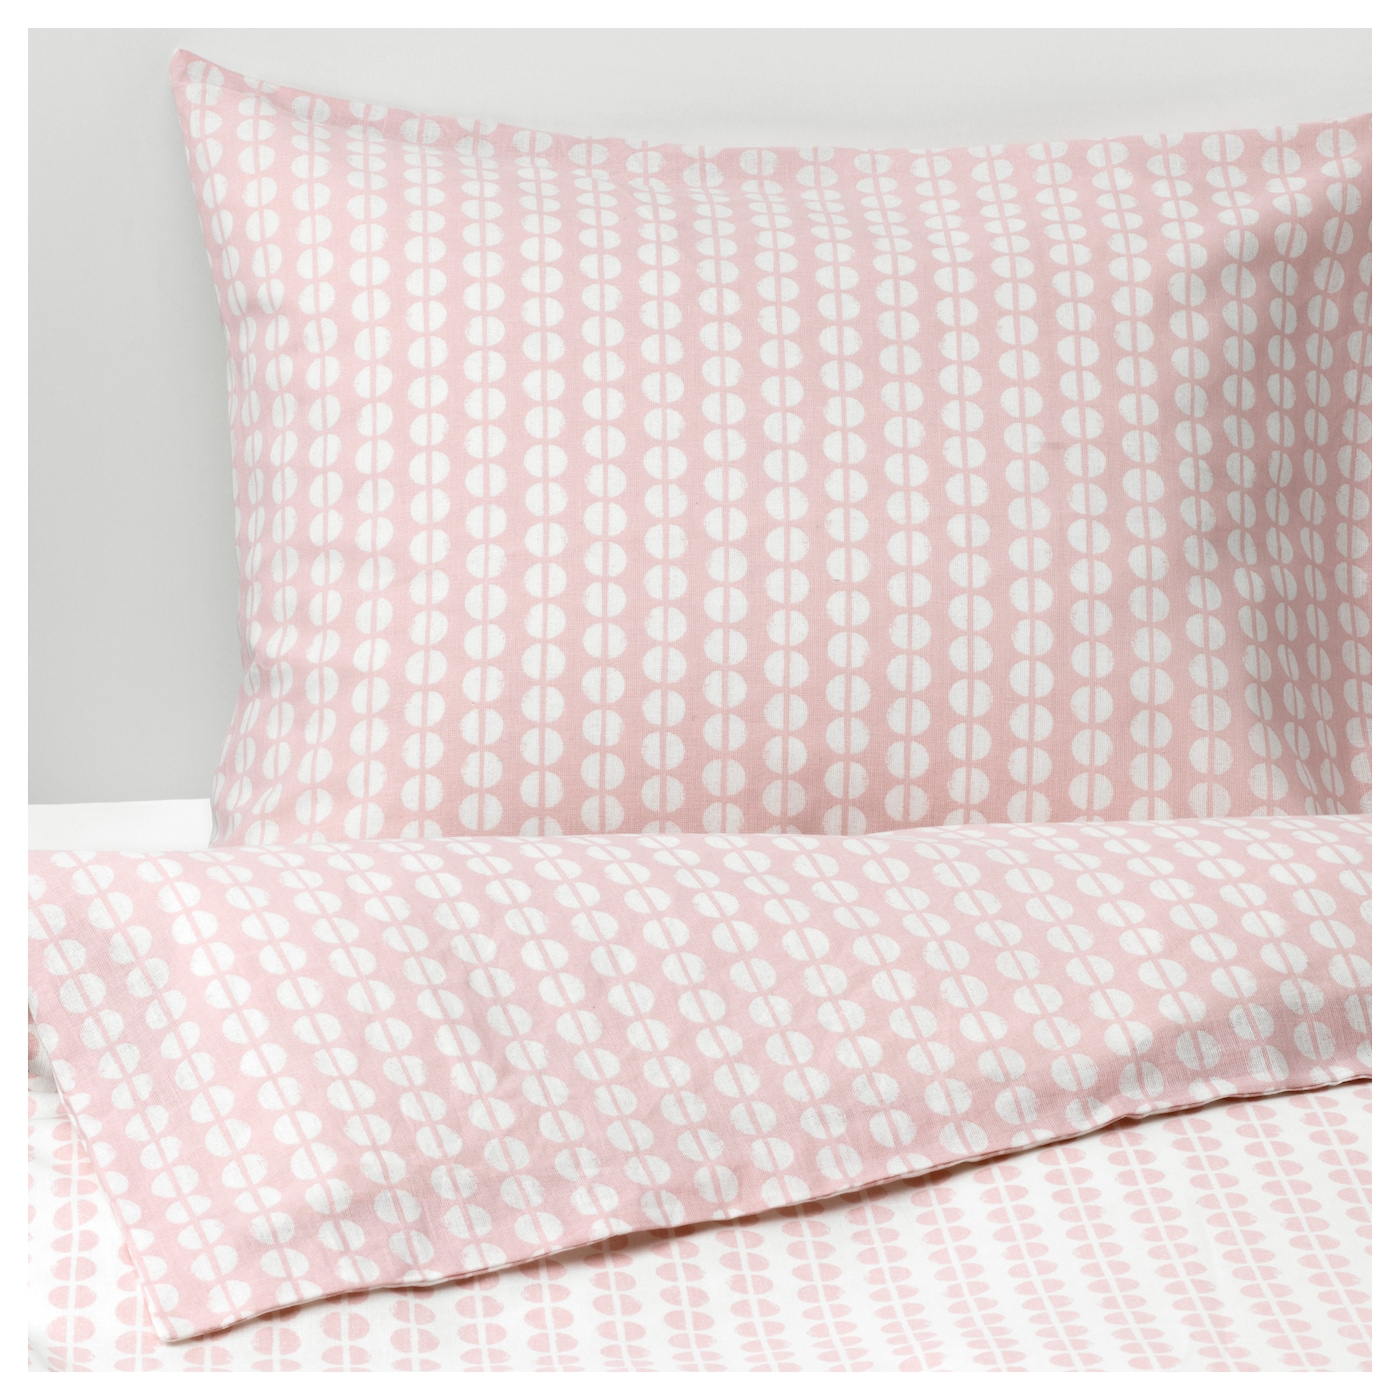 Fj llvedel quilt cover and 2 pillowcases pink 240x220 for Parure housse de couette ikea